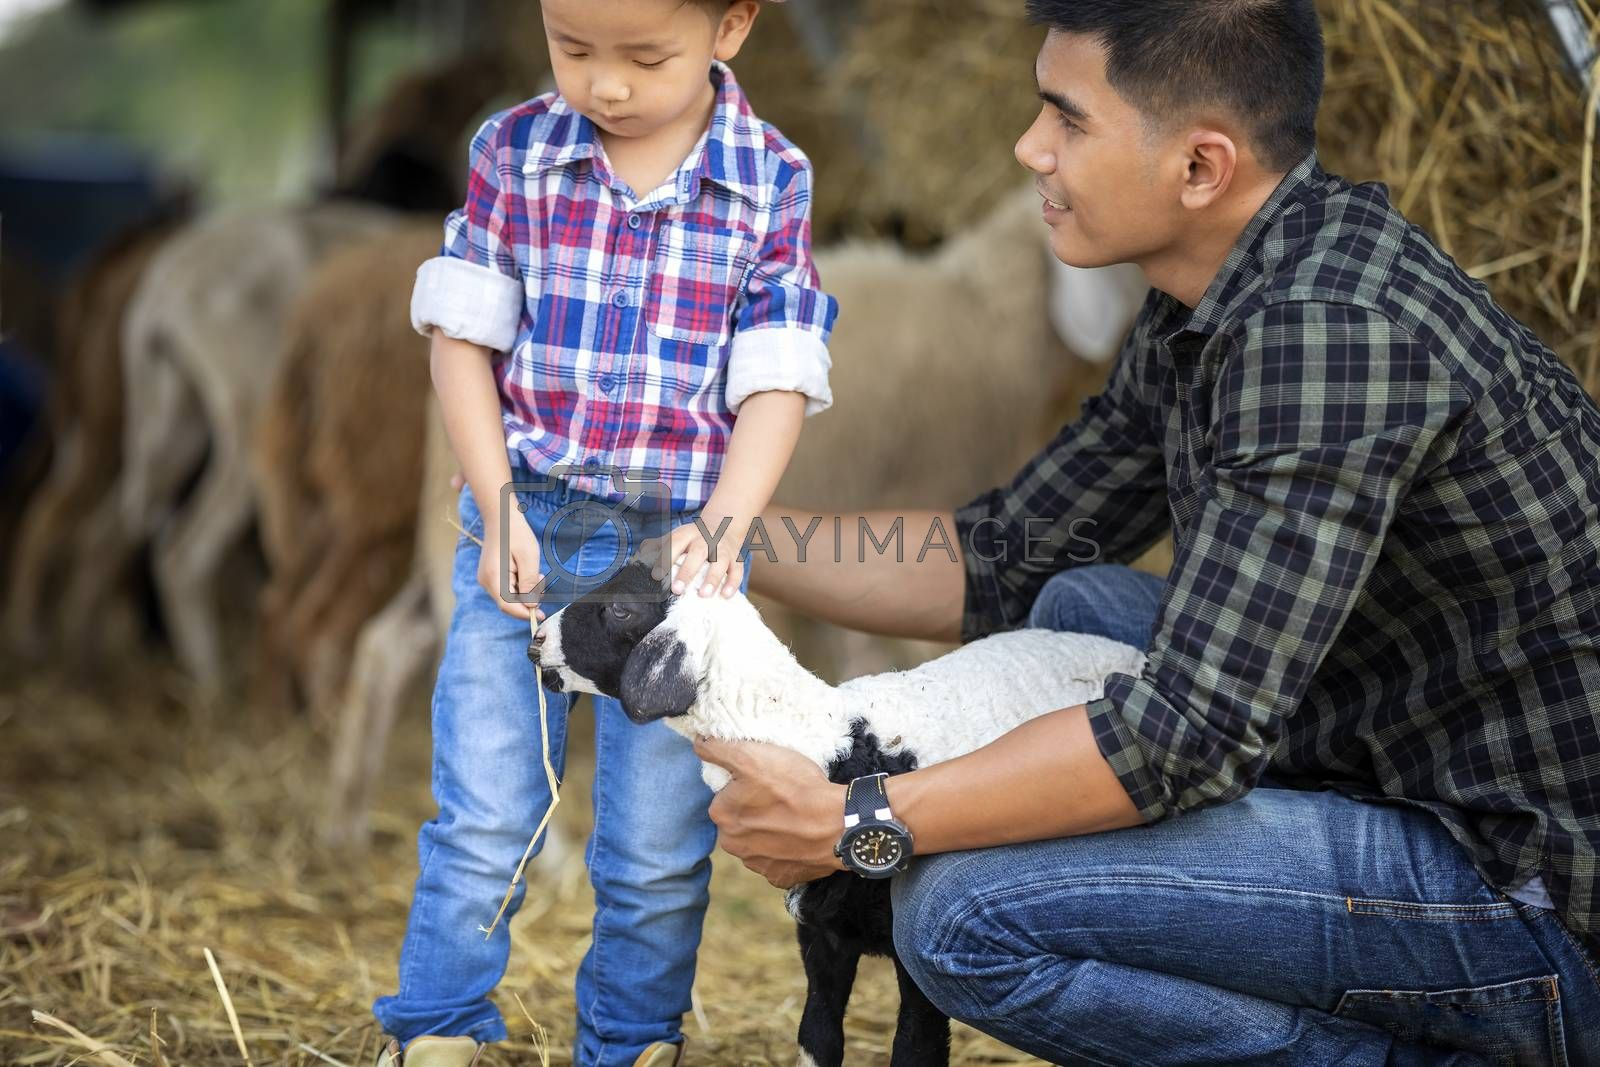 The father and son, the sheep farm owner, hug a small lamb in the embrace with love in their pet.